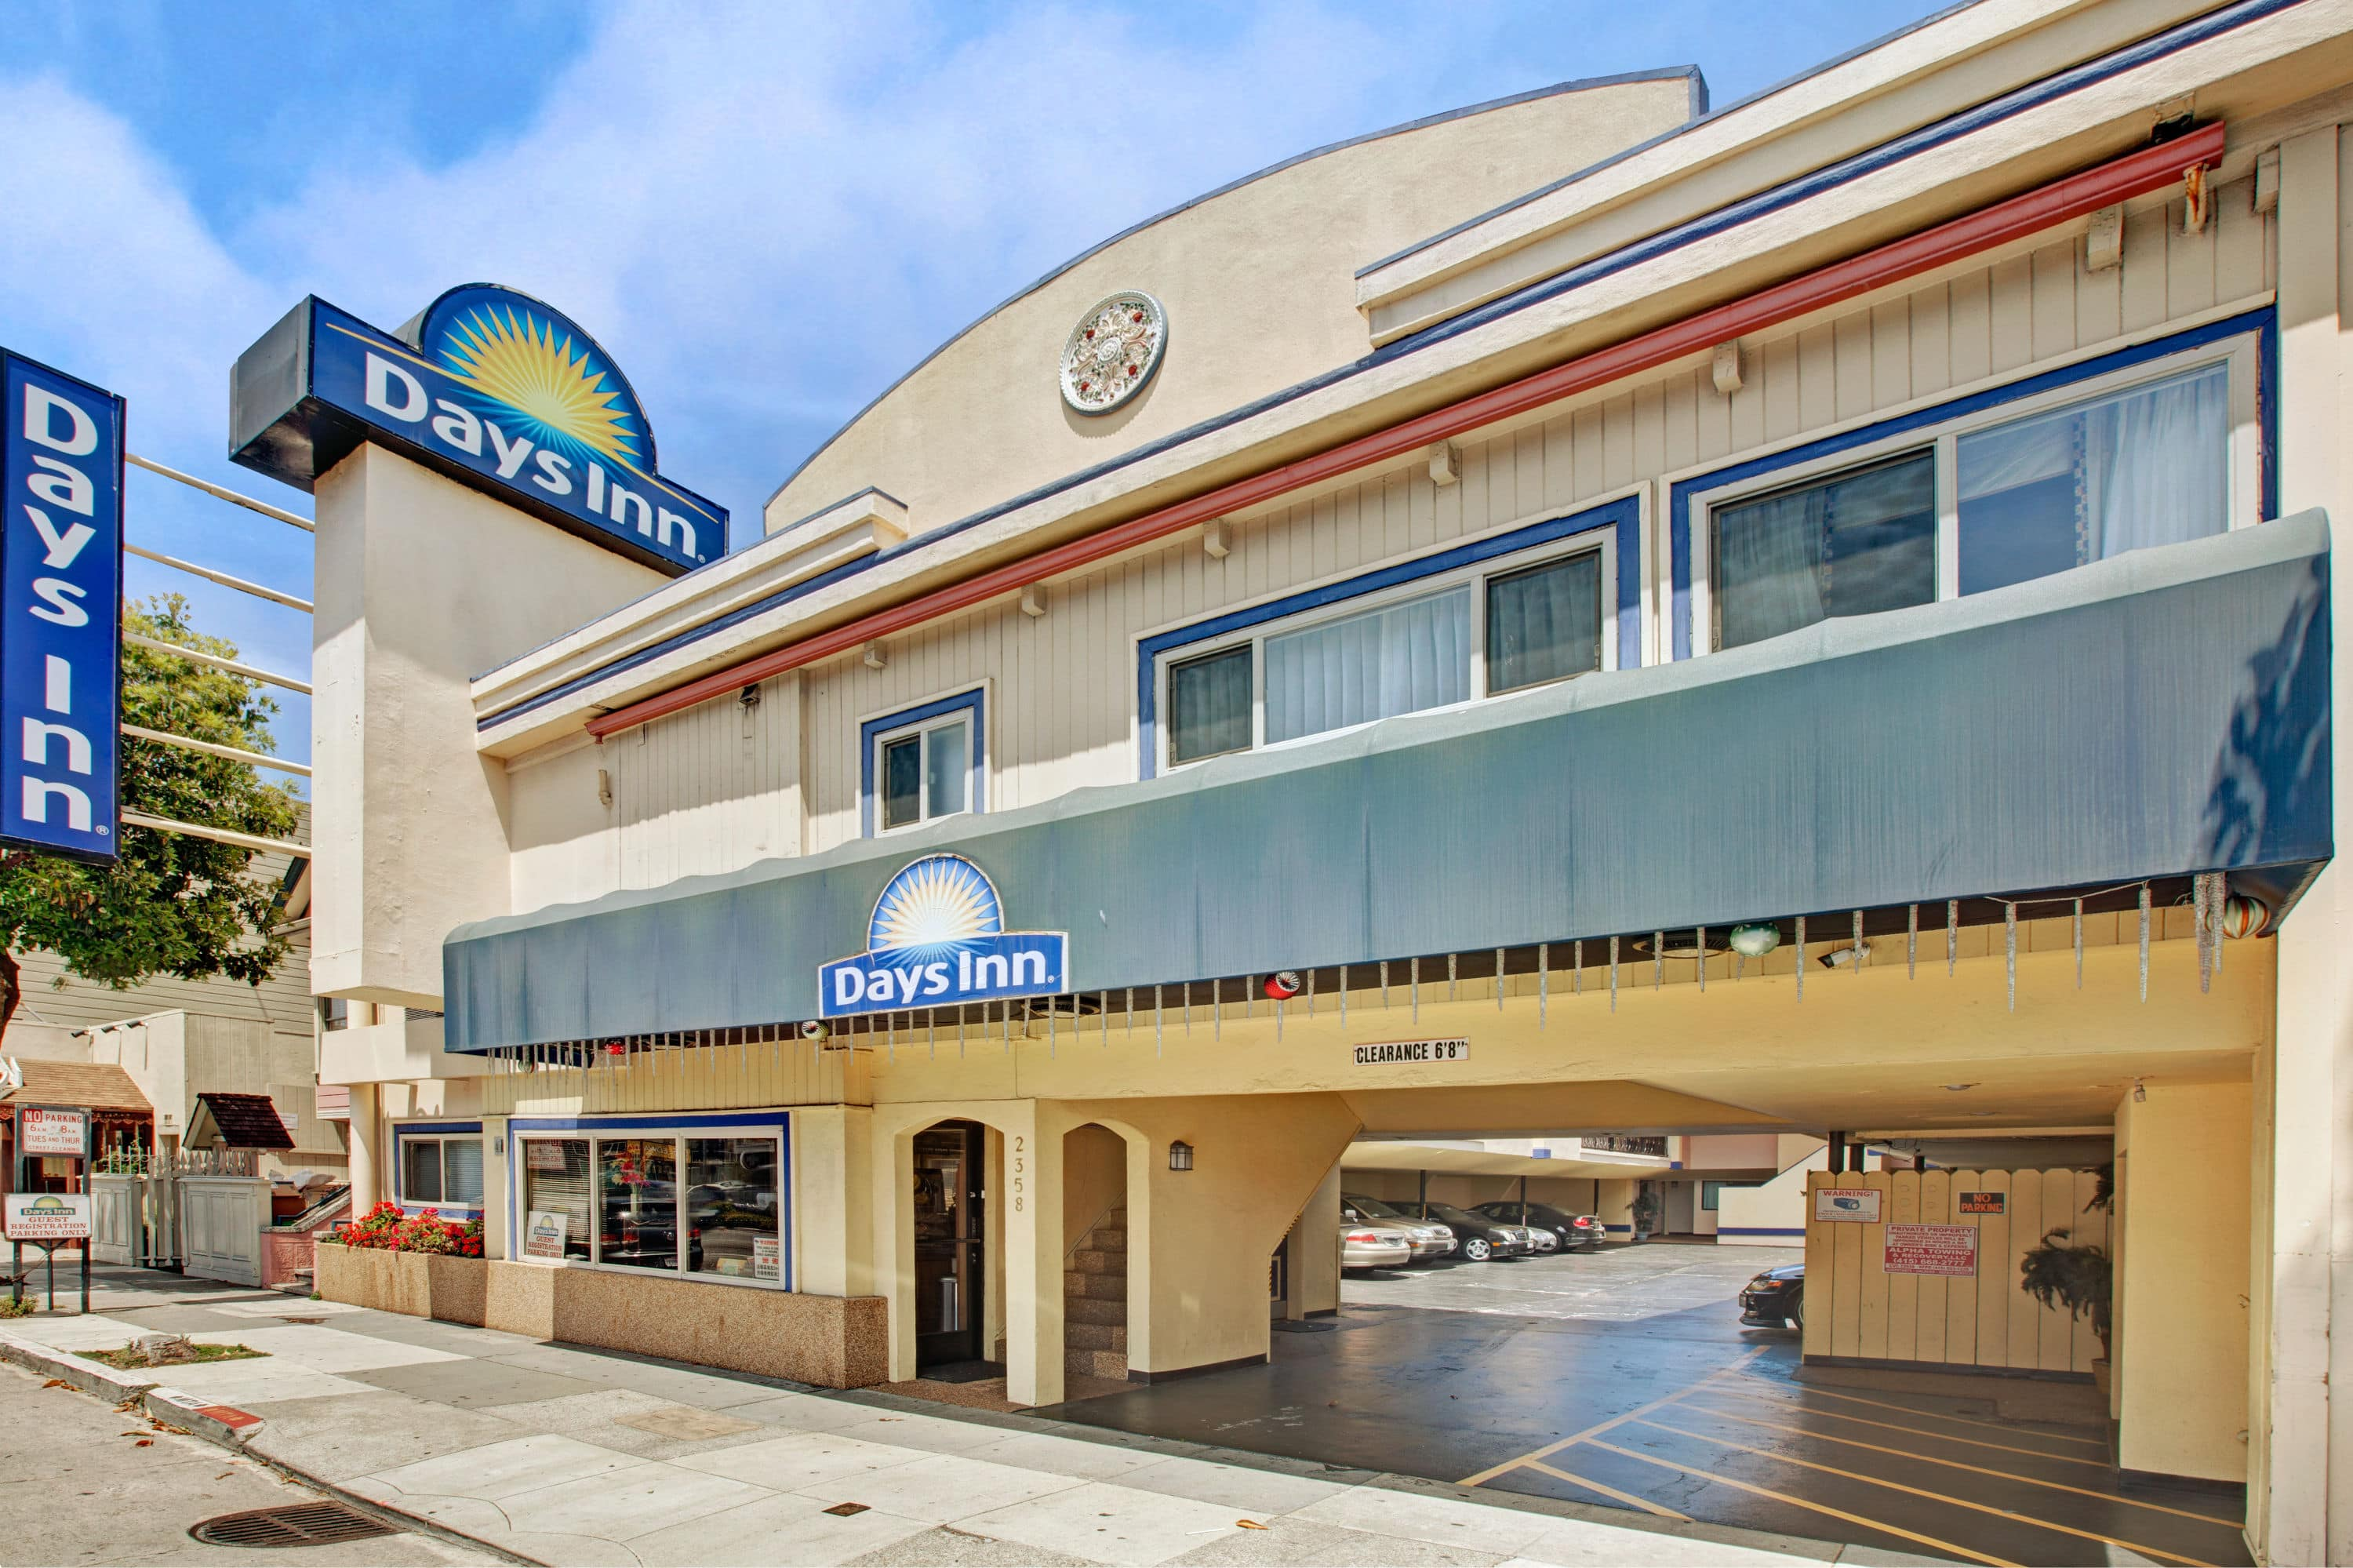 days inn by wyndham san francisco lombard san francisco ca hotels rh wyndhamhotels com days inn san francisco tripadvisor days inn san francisco tripadvisor